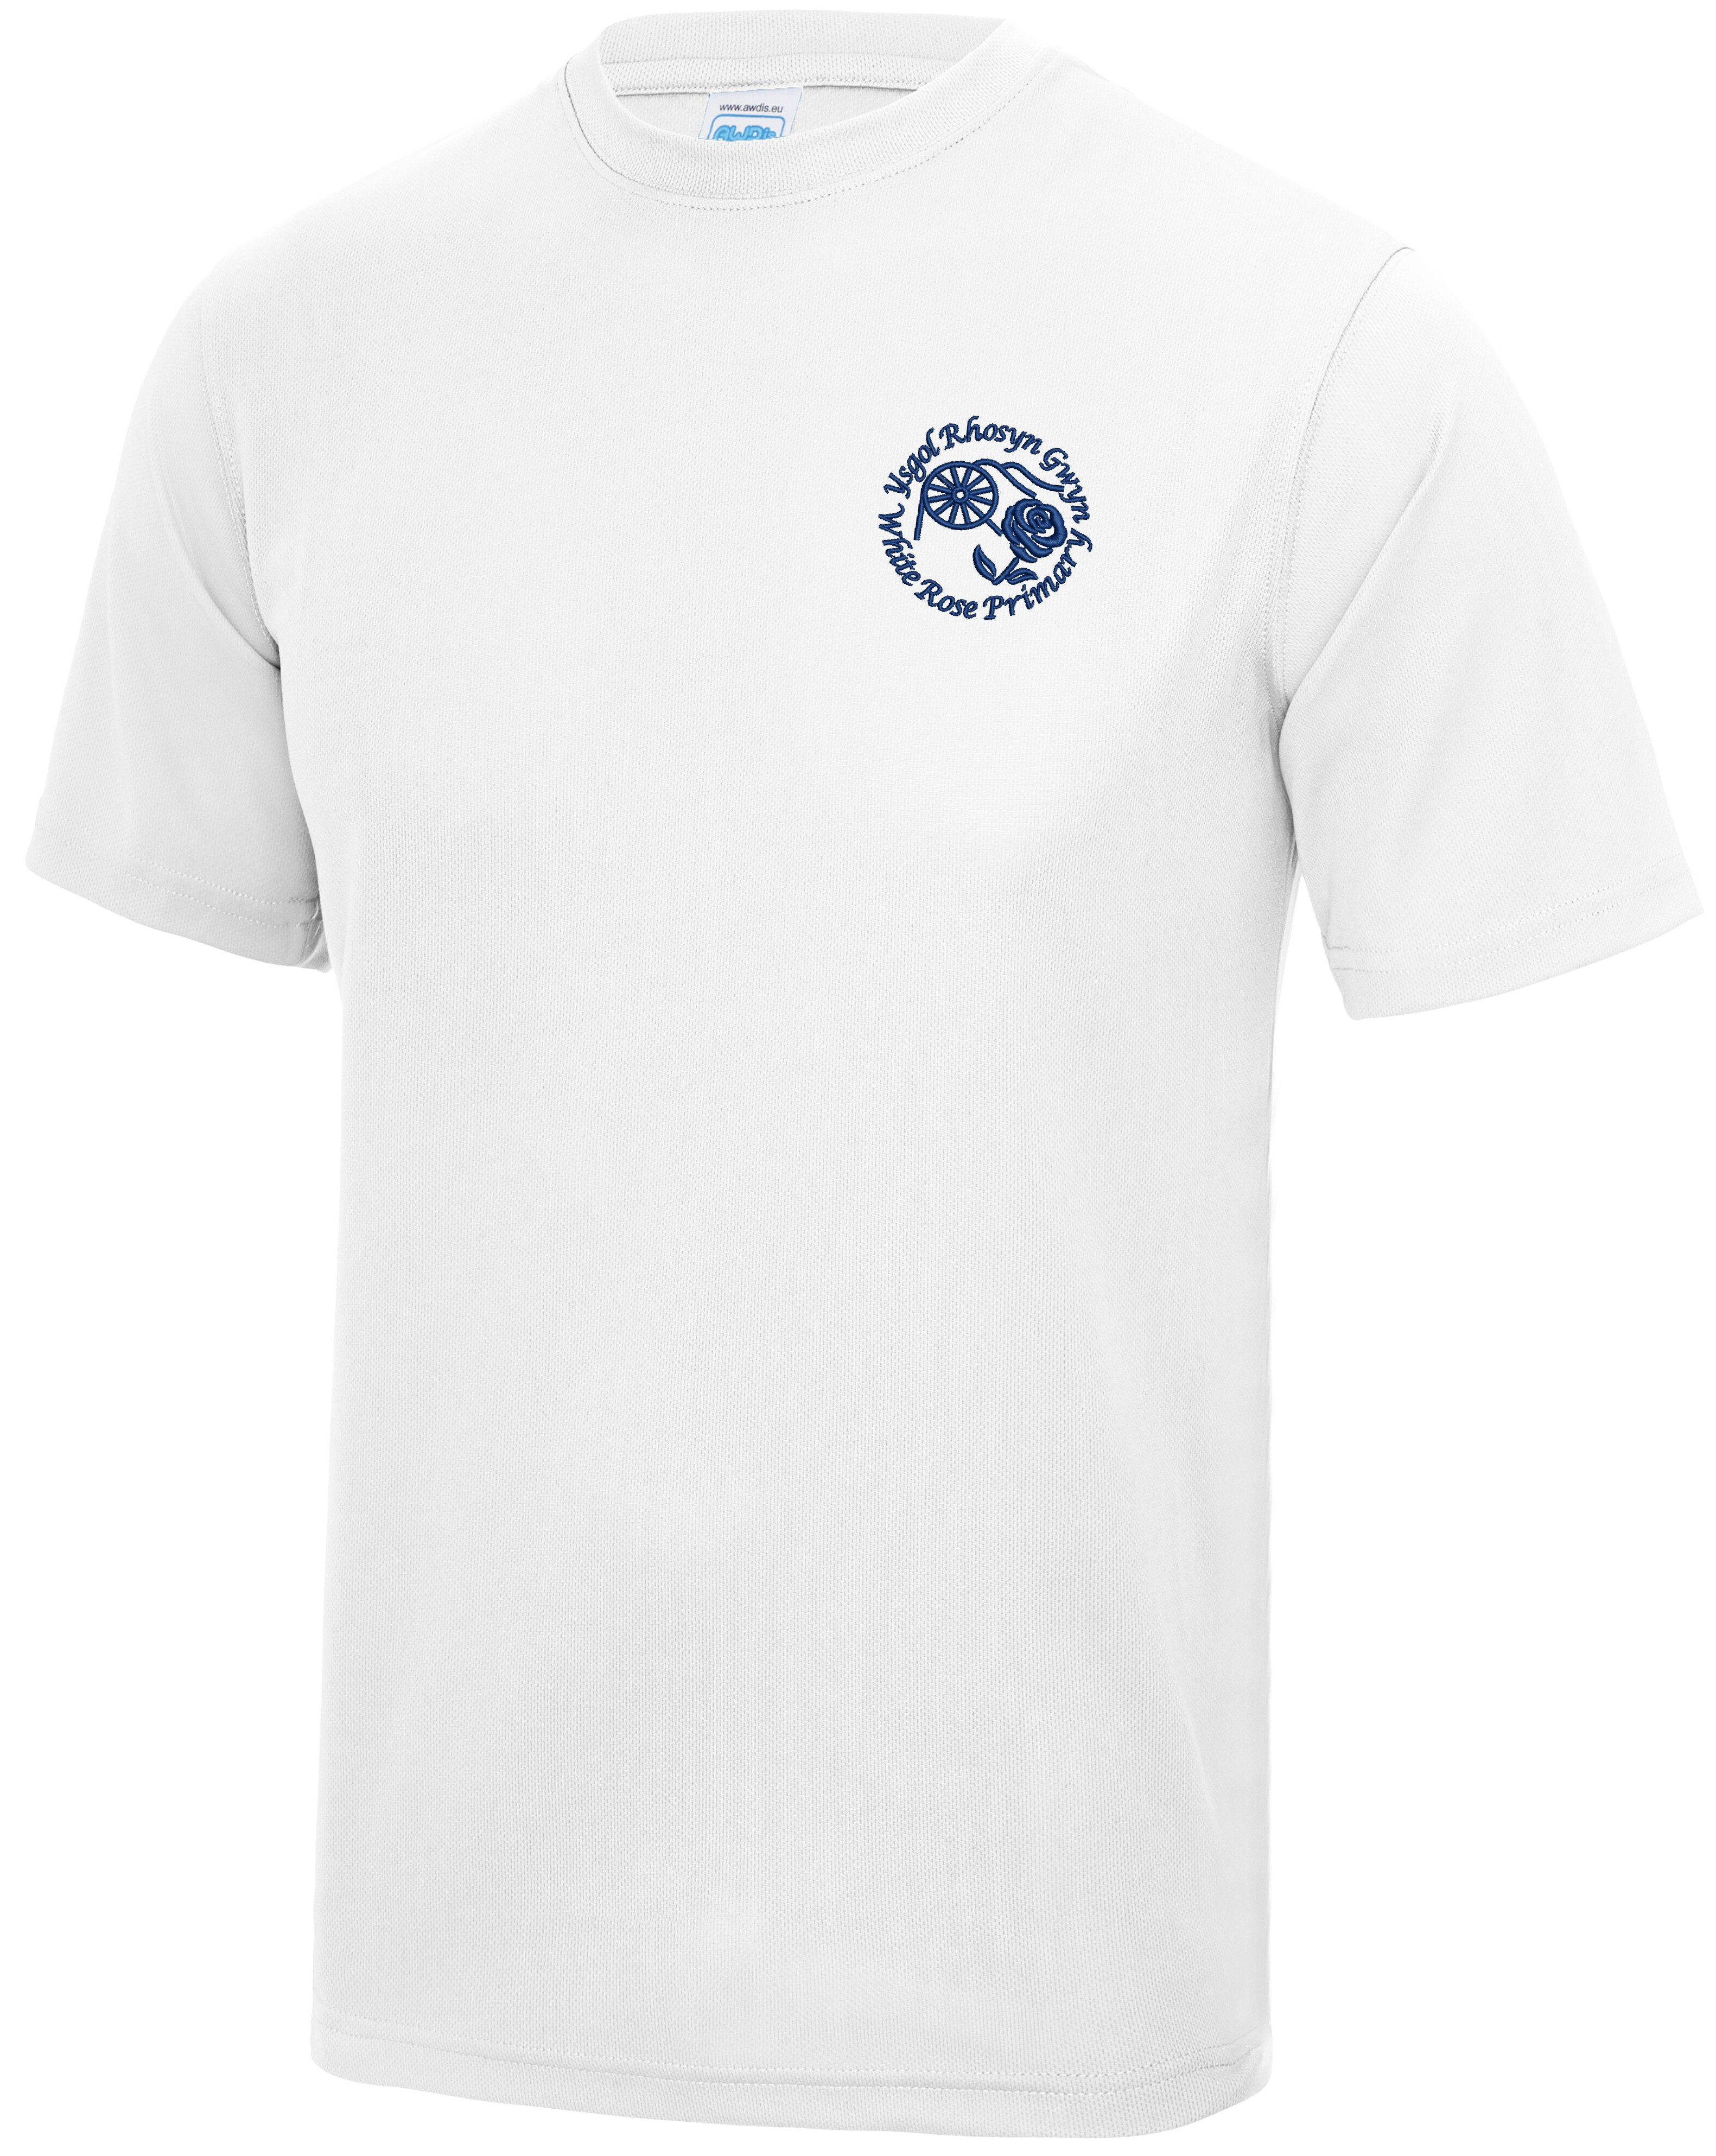 White Rose Primary PE T Shirt